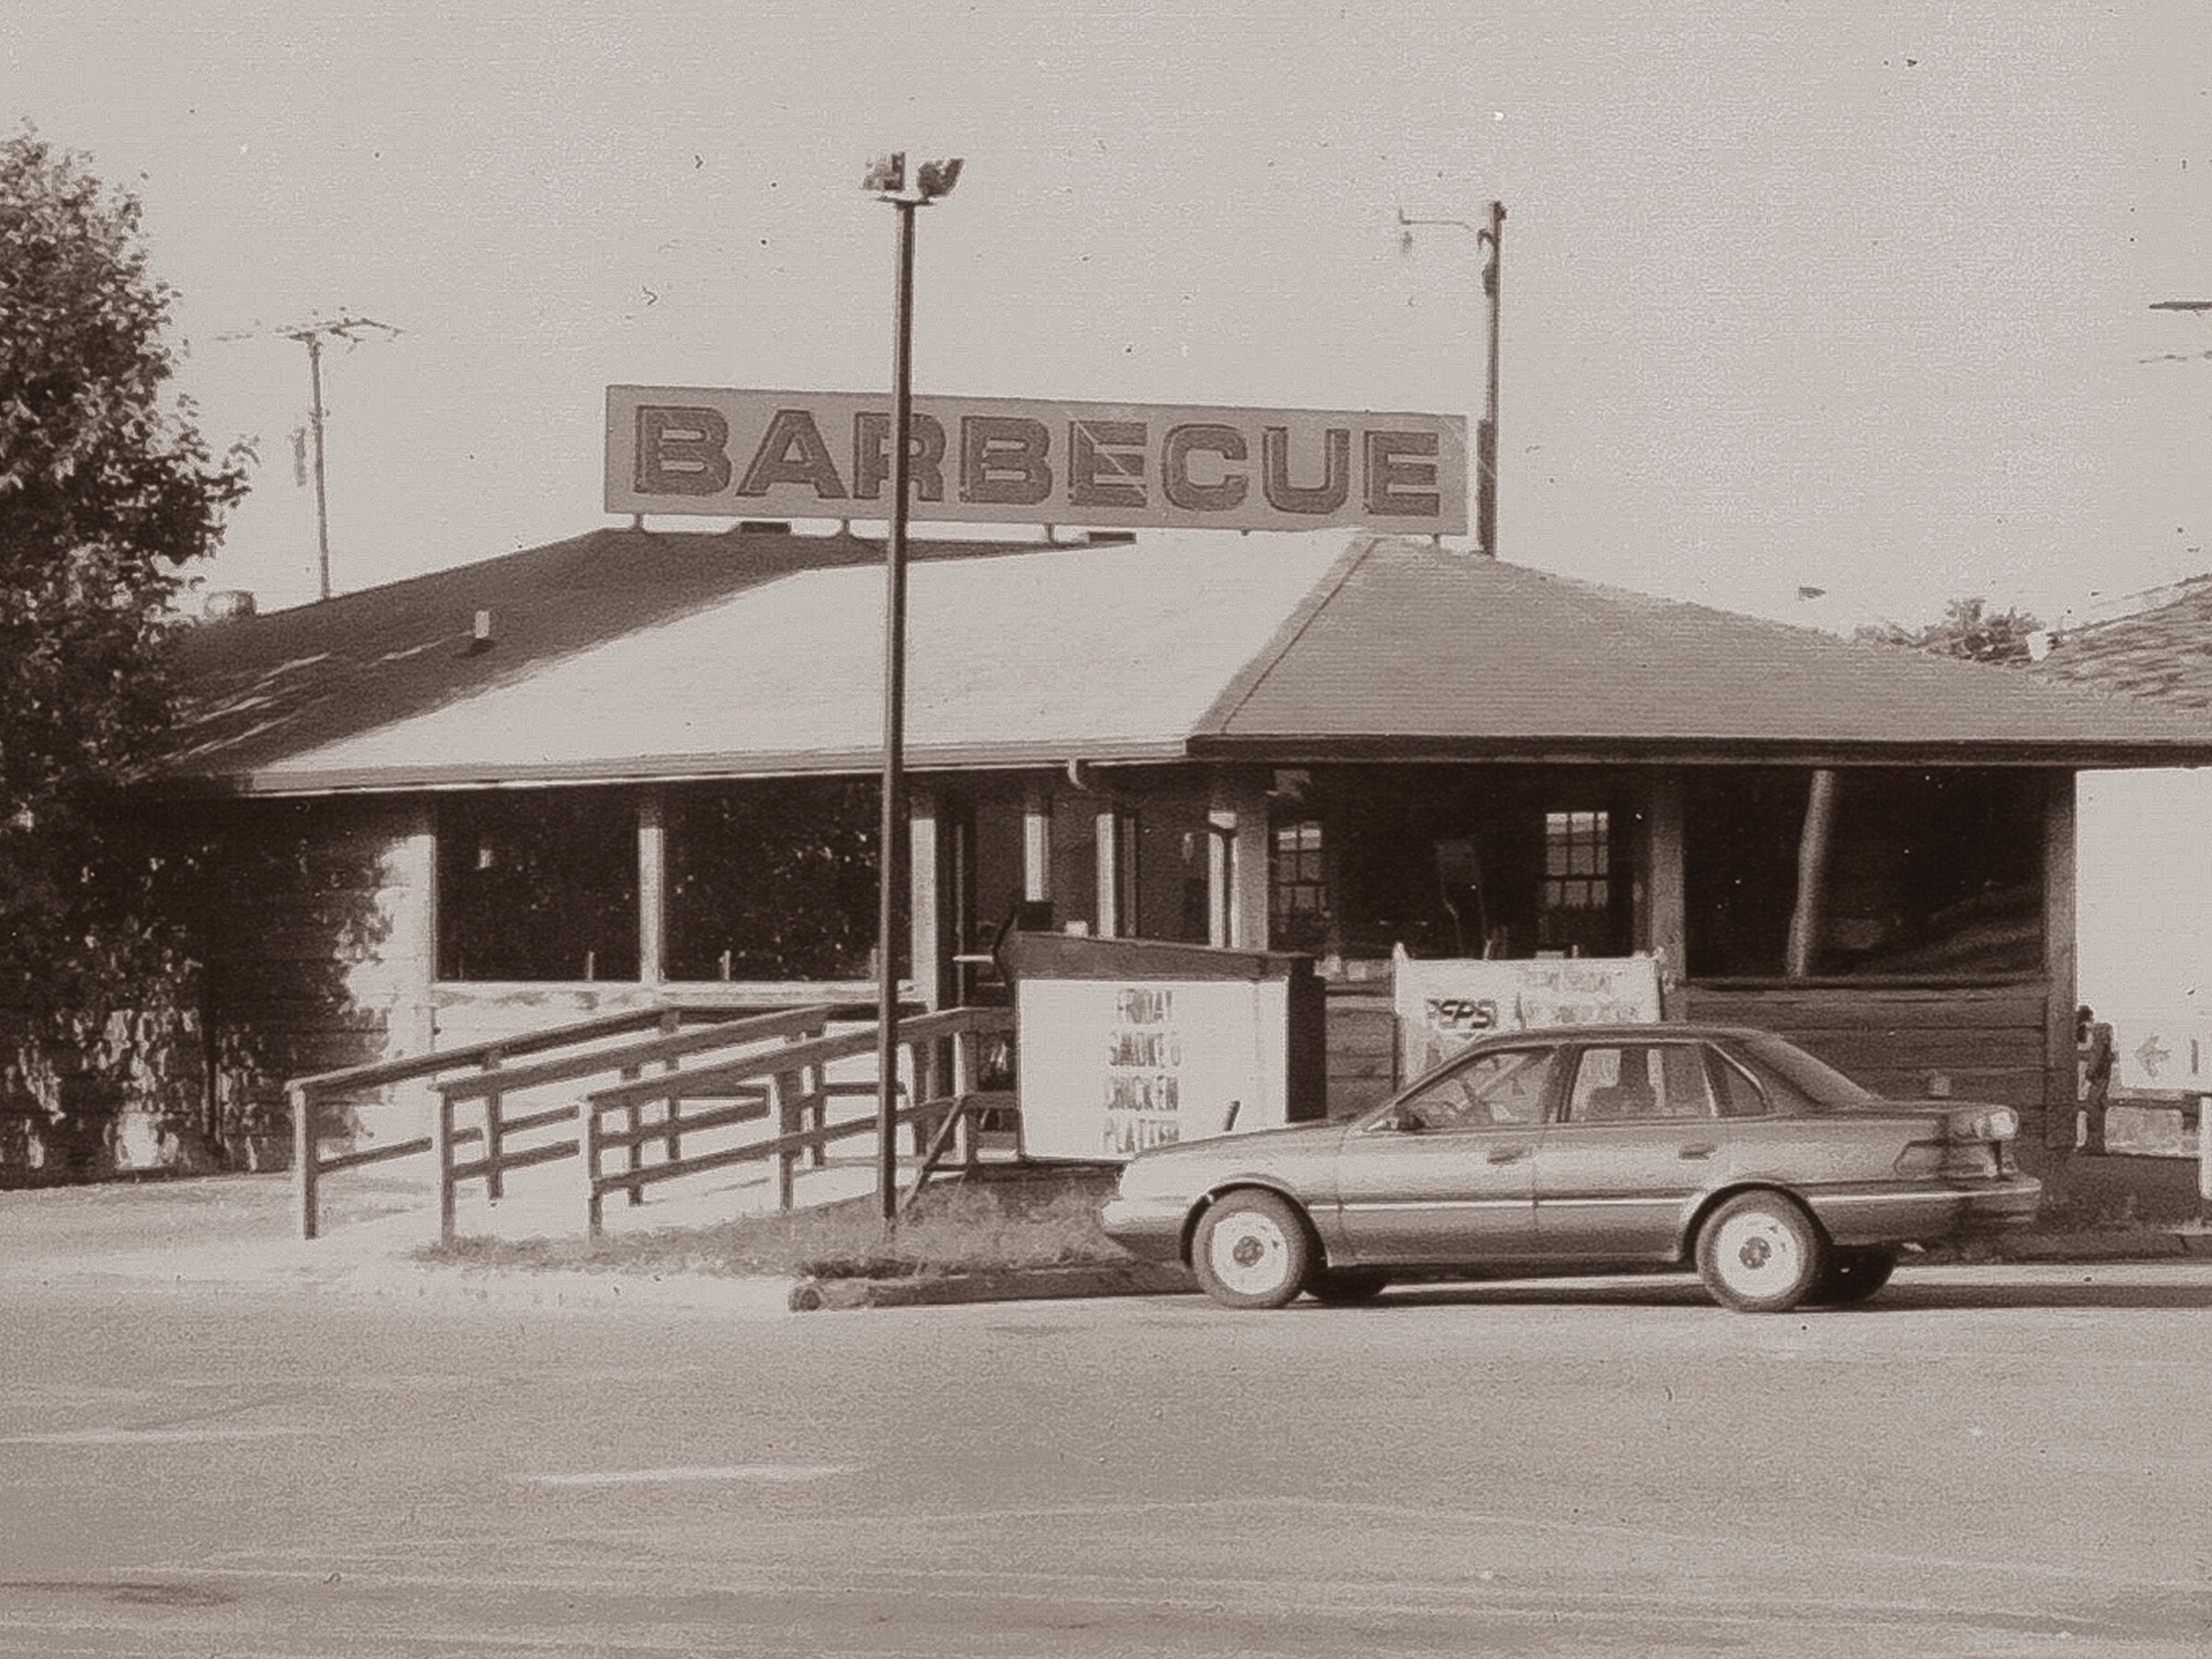 1984 - THE SECOND RICK'S BARBECUE WAS ALSO OPENED IN LAWRENCEBURG, TN10 YEARS AFTER ORIGINALLY OPENING IN KMART PLAZA PARKING LOT, THE LOG BUILDING WAS RELOCATED TO 1001 NORTH MILITARY STREET